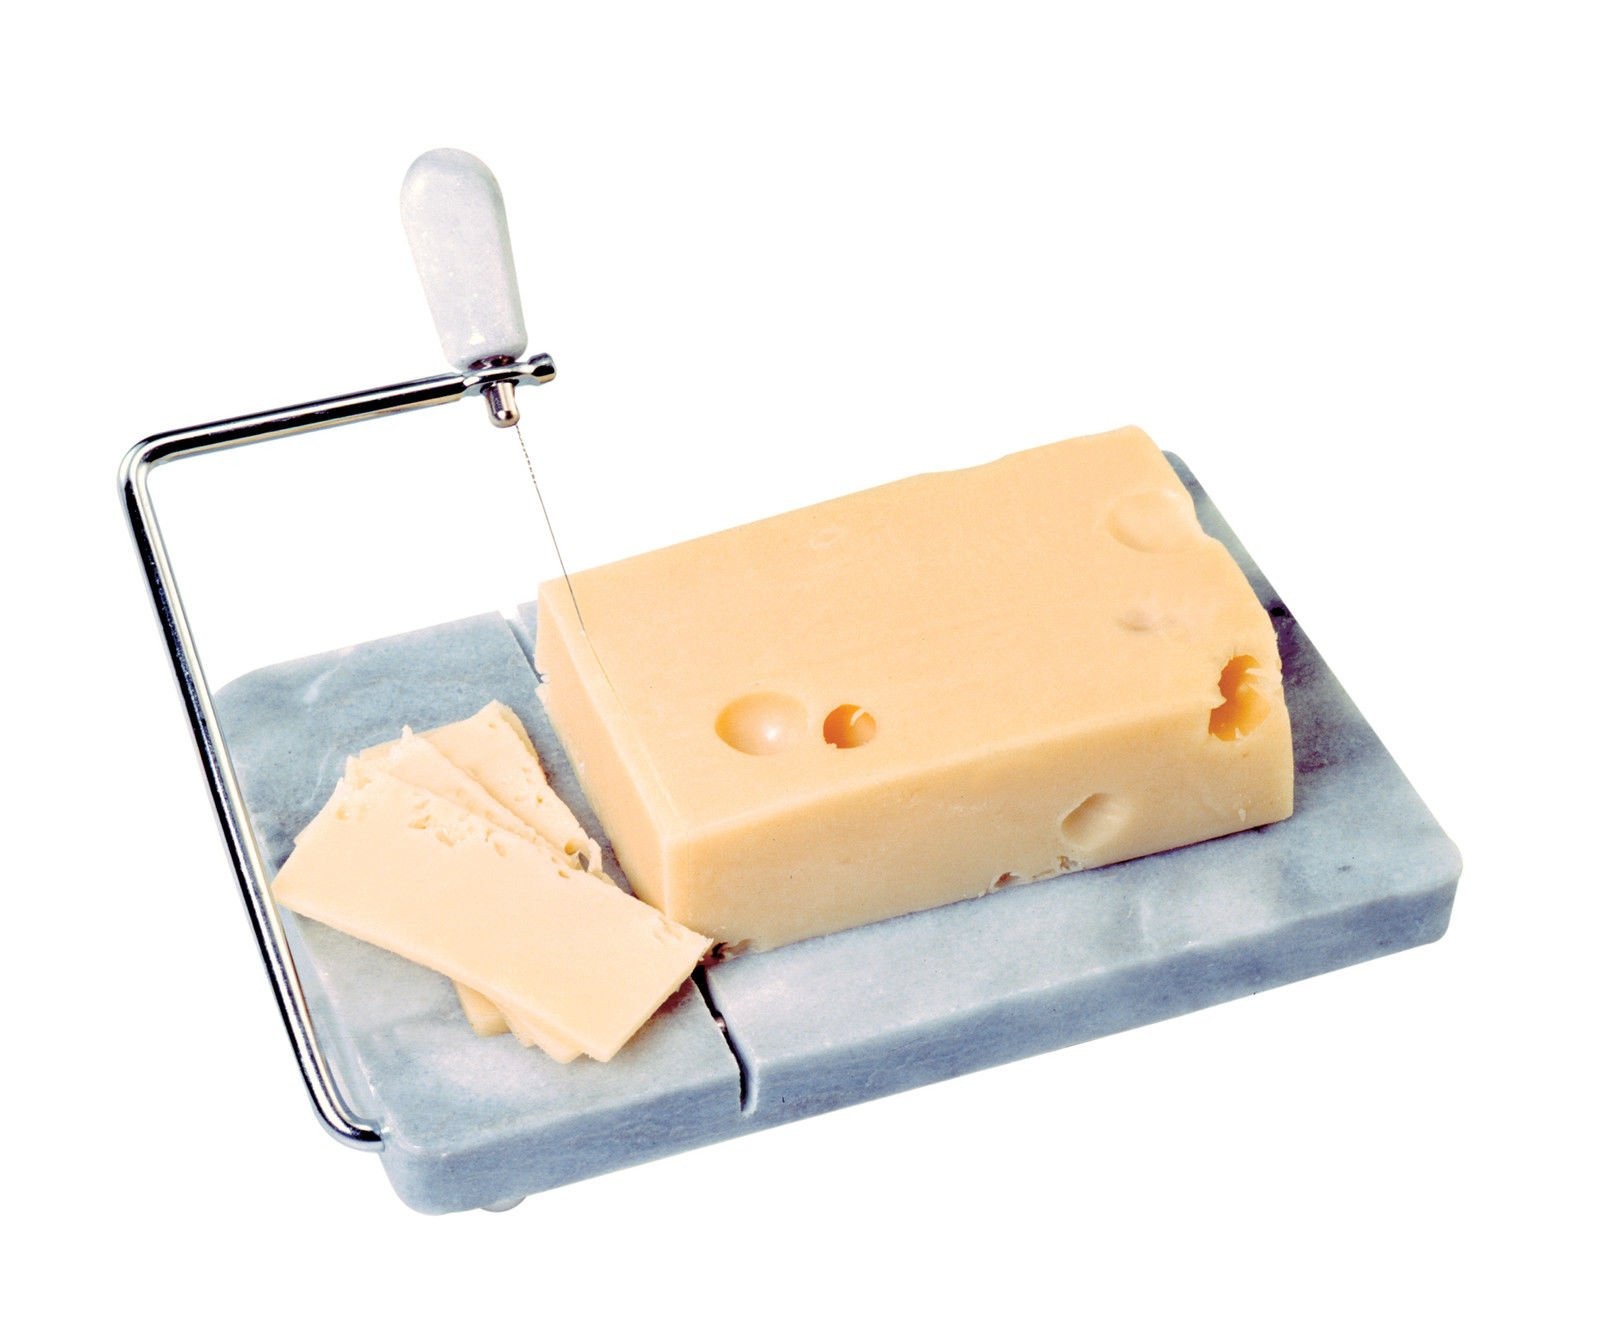 NORPRO 349 Marble Board with Cheese Slicer and Extra Wires